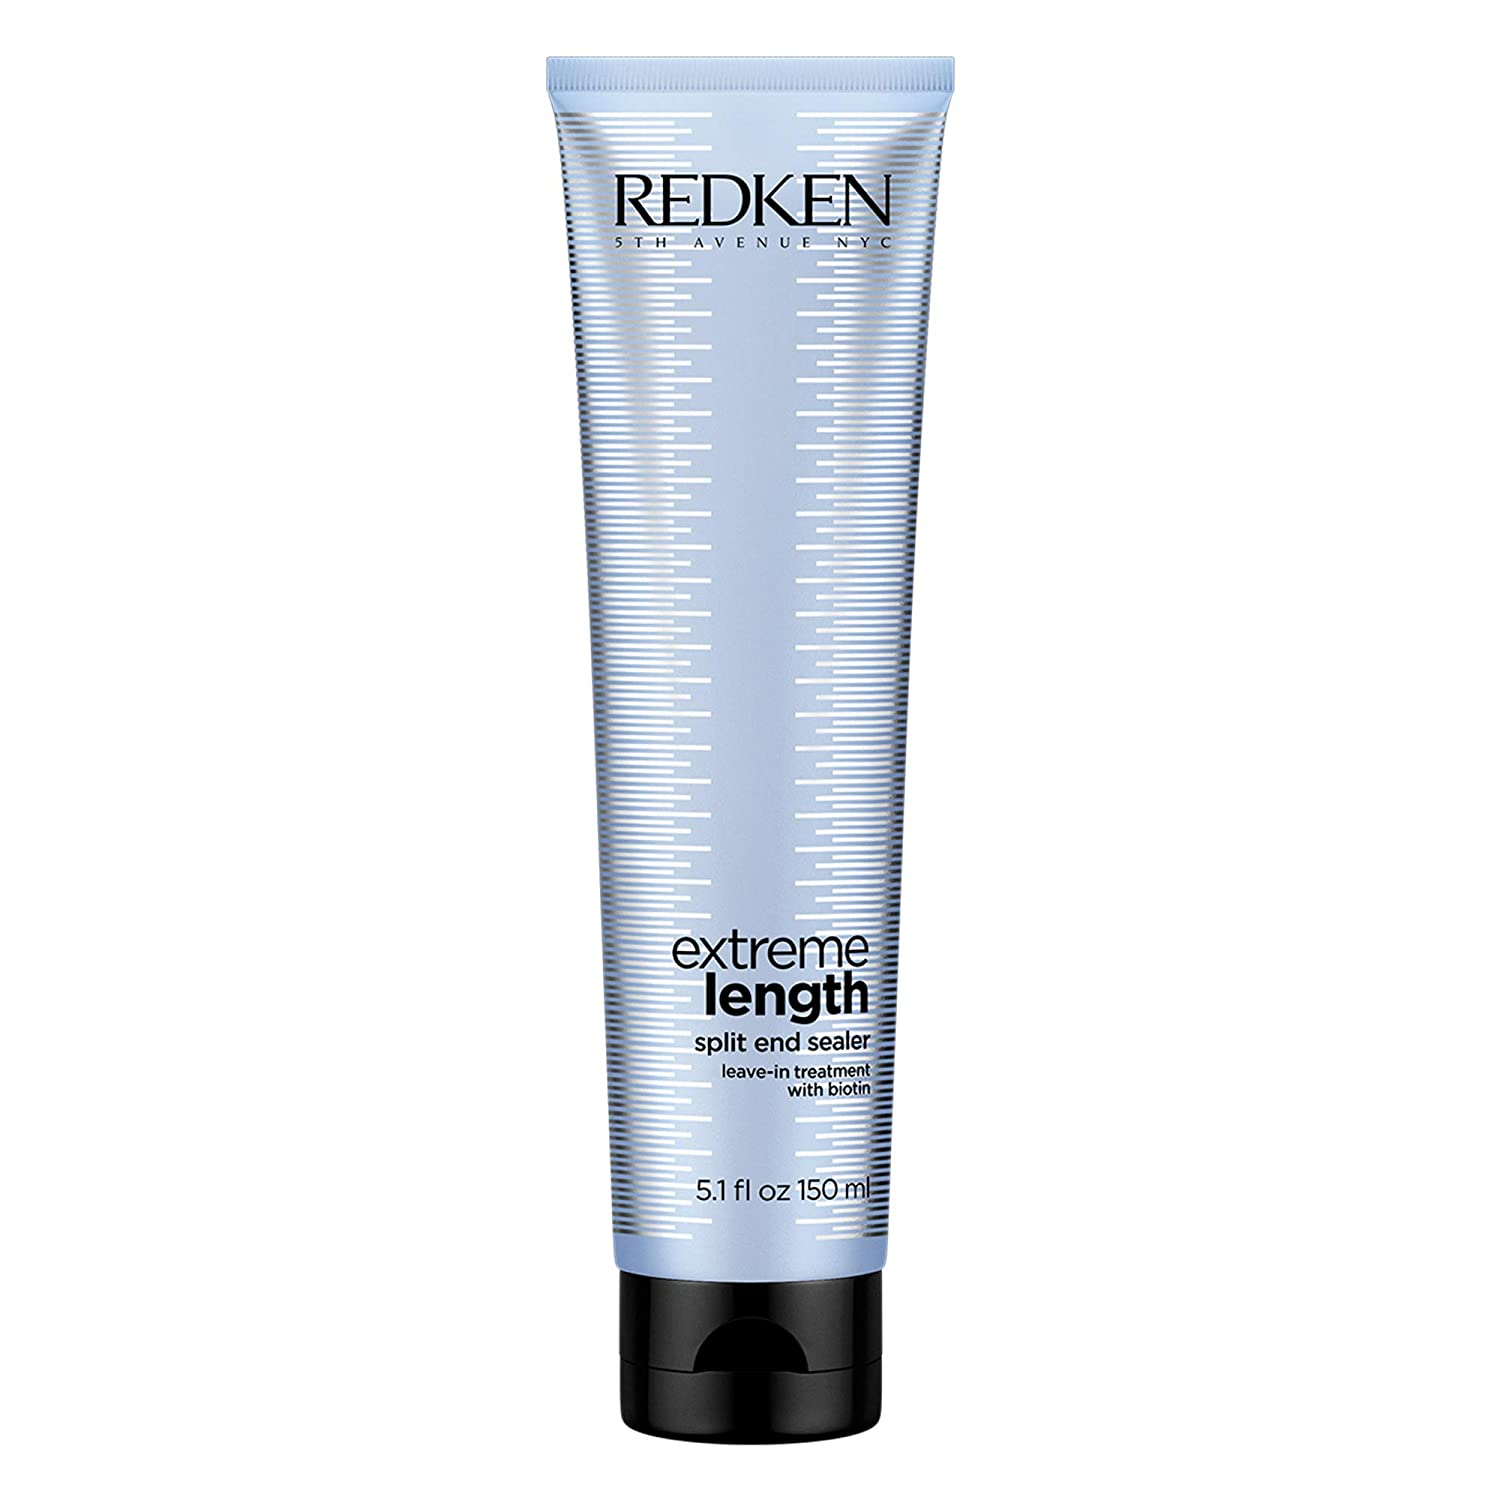 Redken Extreme Length Leave-In Conditioner | For Hair Growth | Seals Split Ends & Prevents Breakage | Infused With Biotin